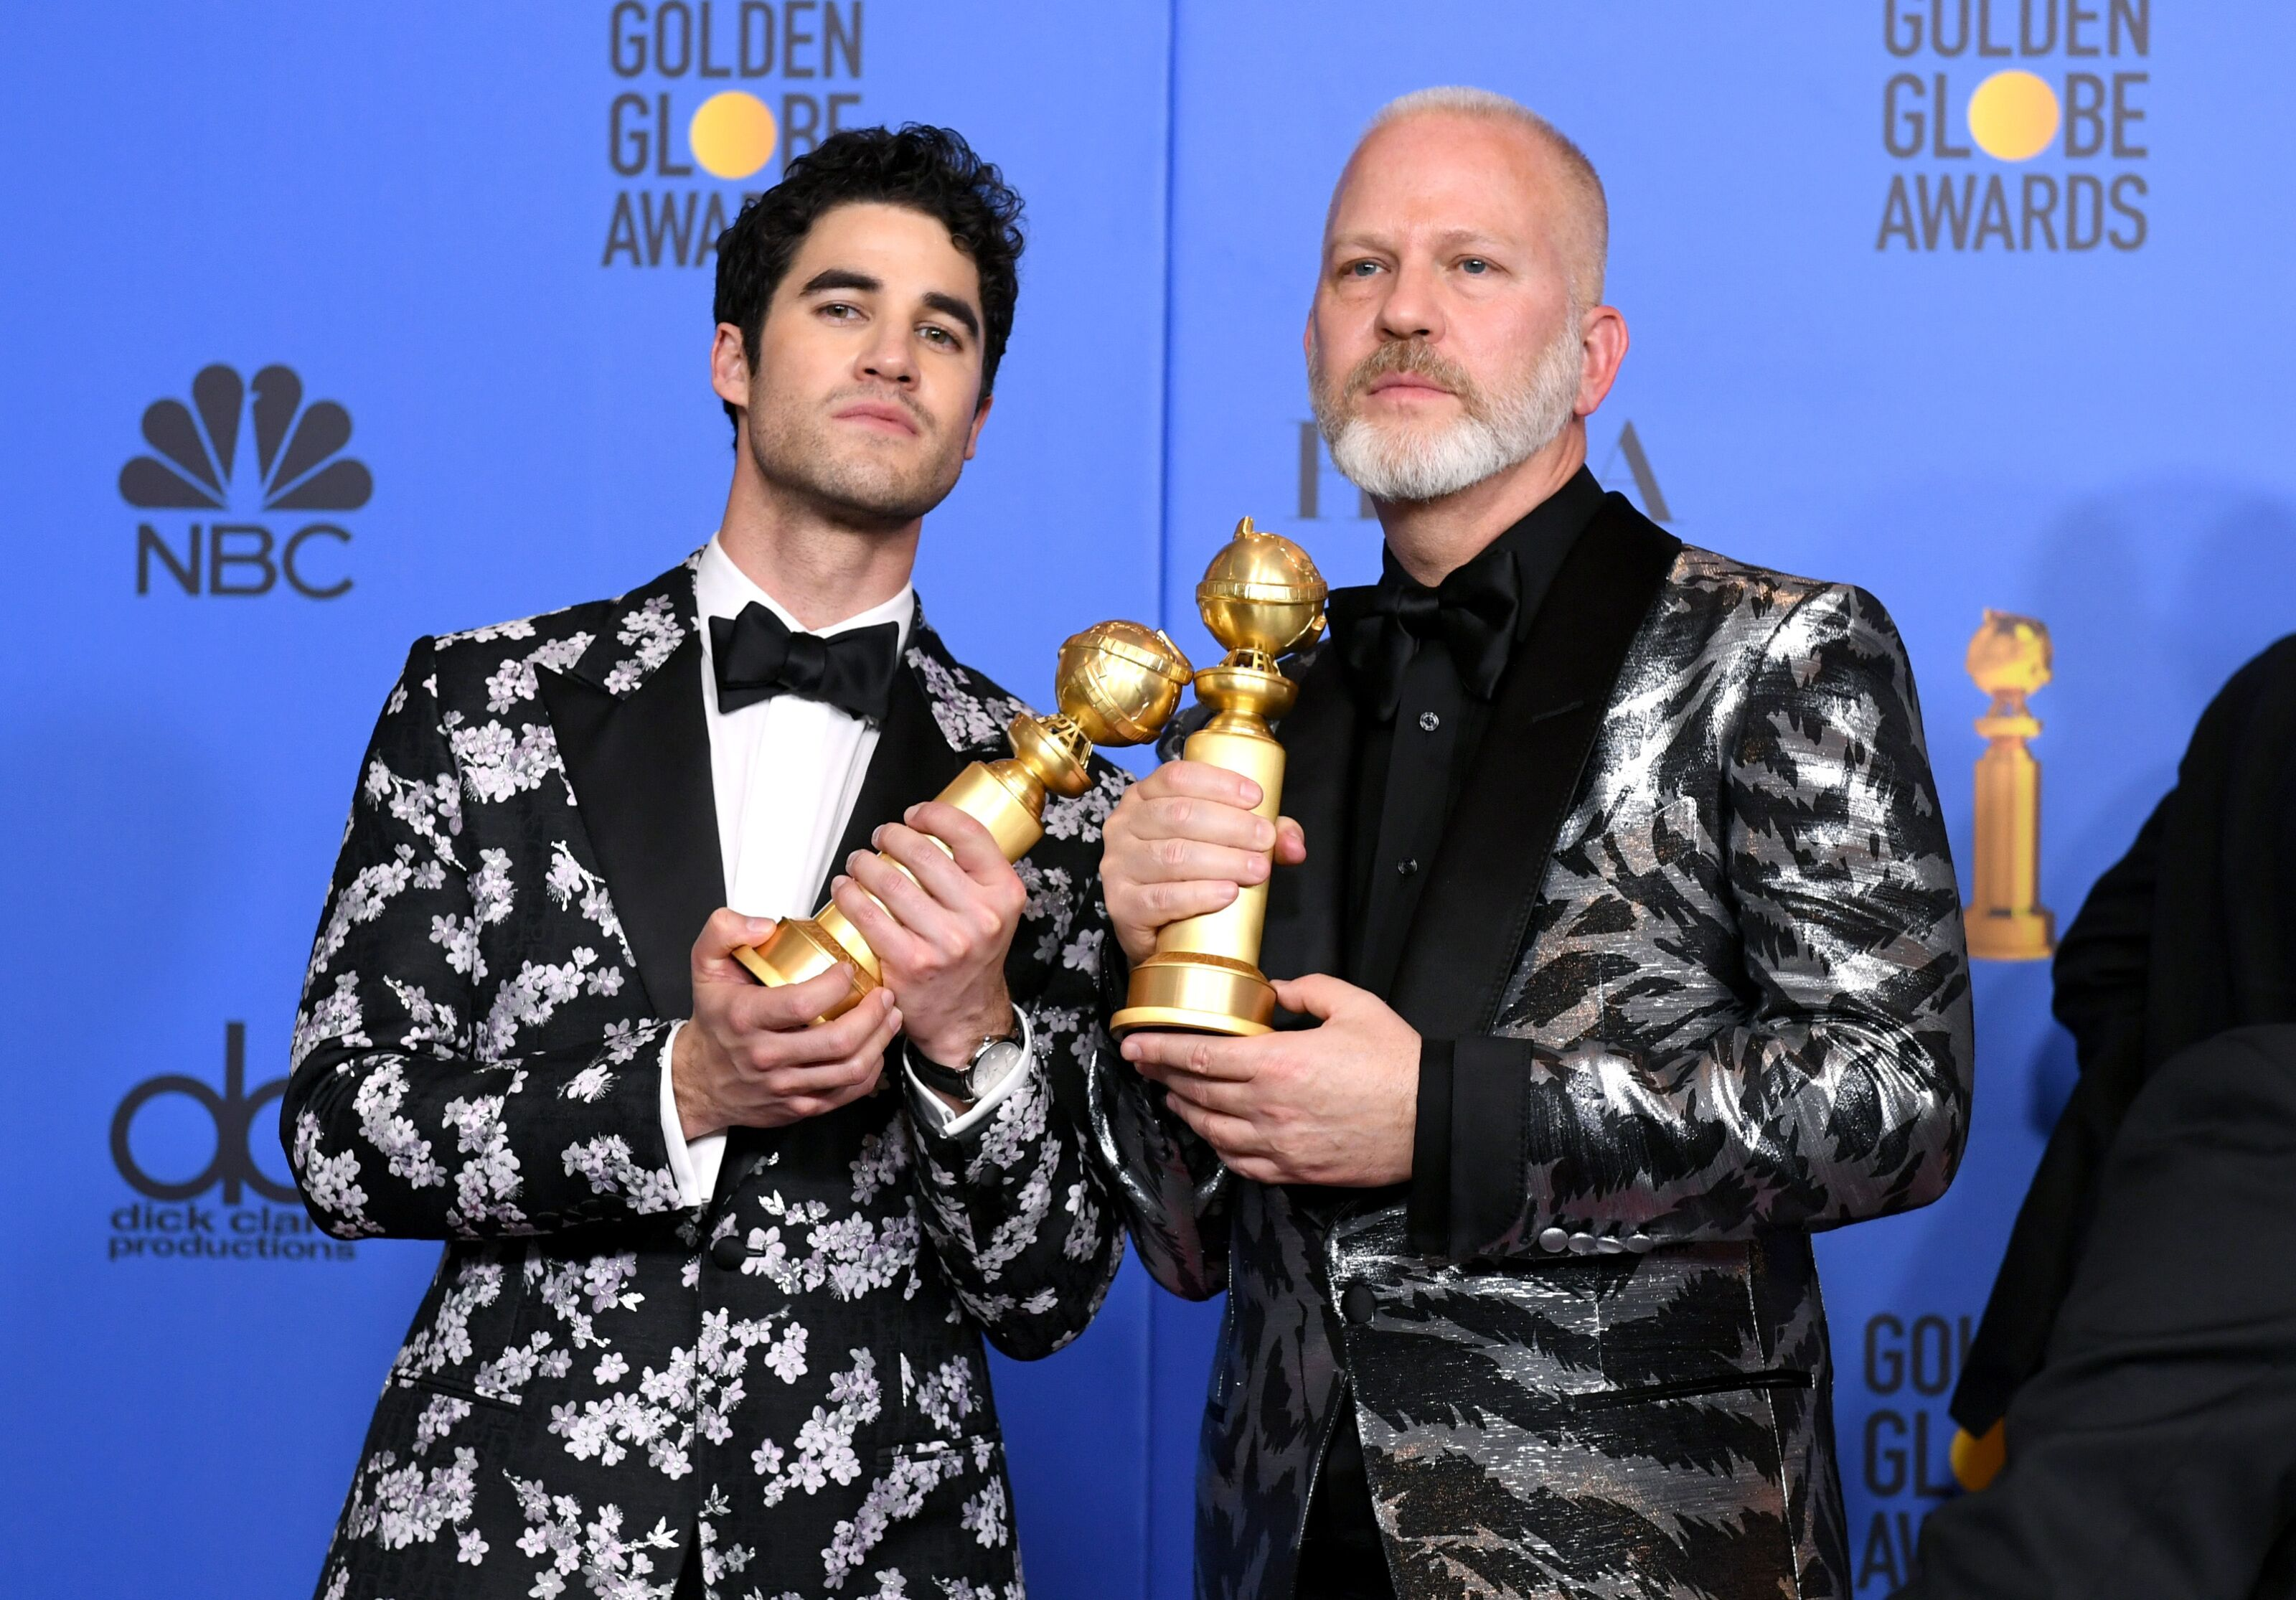 Darren Criss to star and executive produce in Ryan Murphy's Hollywood